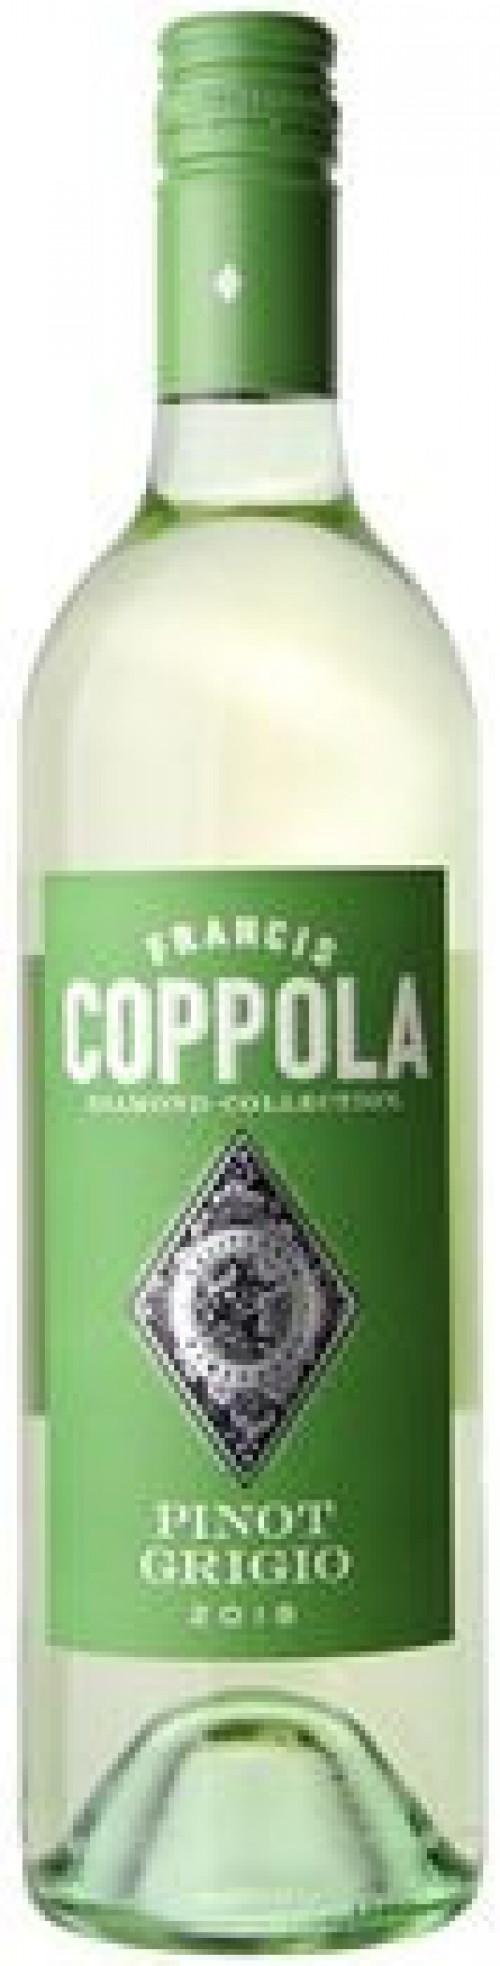 2019 Coppola Diamond Collection Pinot Grigio 750ml